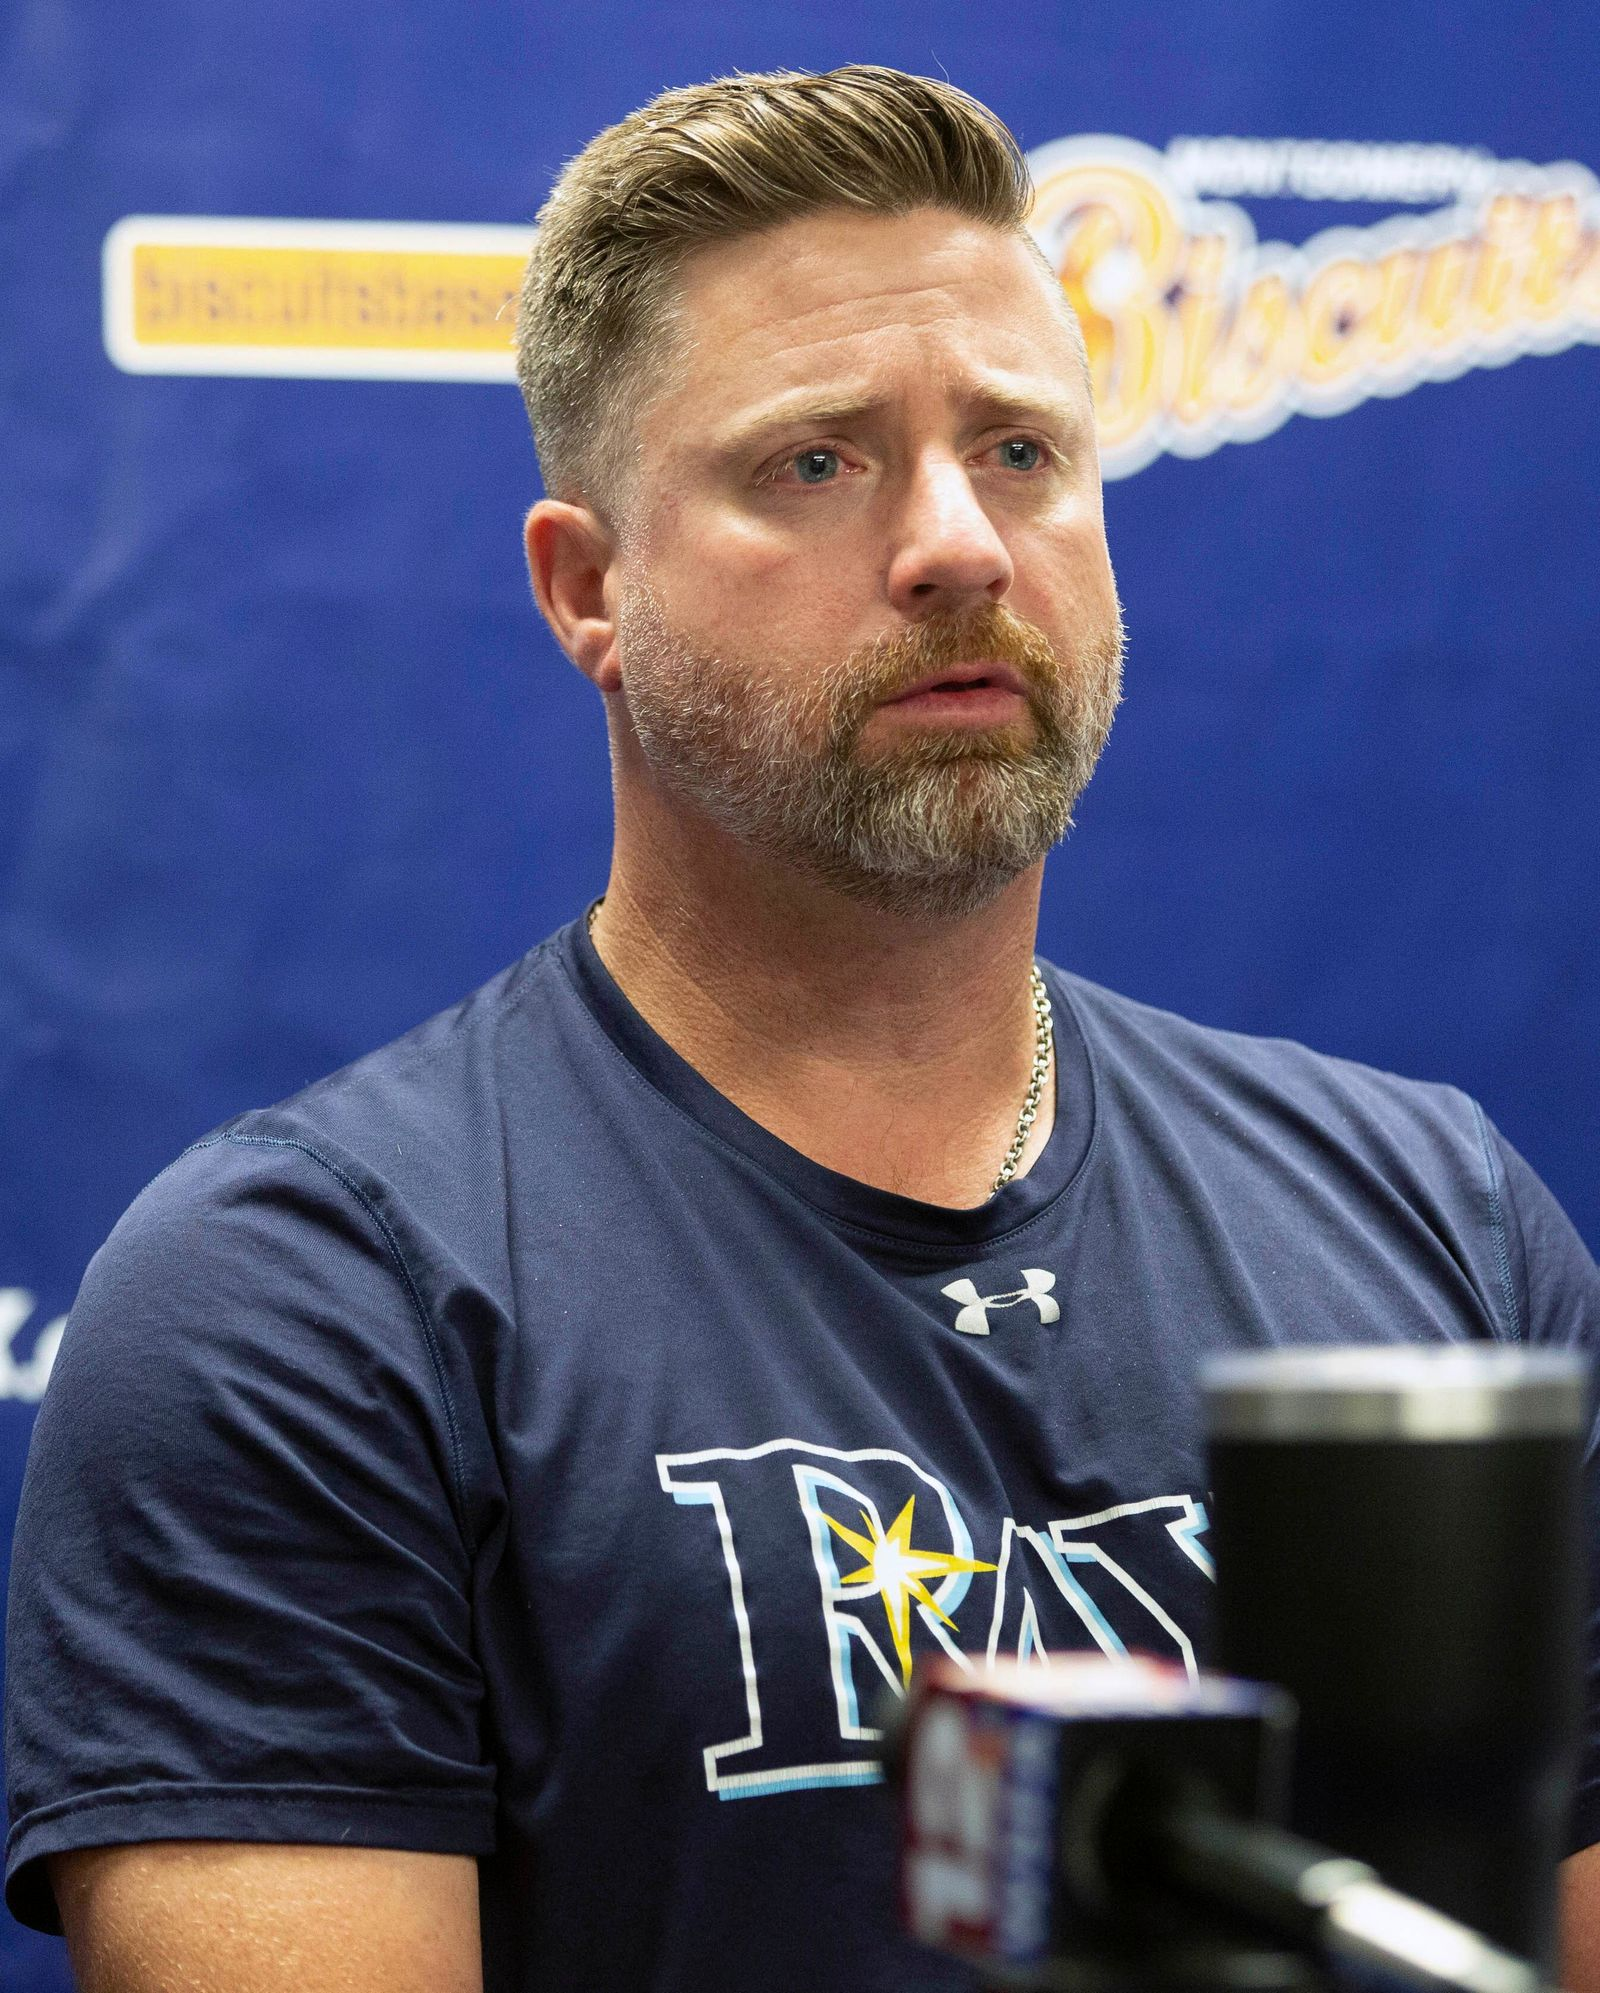 Montgomery Biscuits manager Morgan Ensberg, with tears in his eyes, talks about Blake Bivens, a pitcher with the team whose wife and child were killed in a triple homicide Thursday, Aug. 29, 2019 in Montgomery, Ala. (Kirsten Fiscus/Montgomery Advertiser via AP)